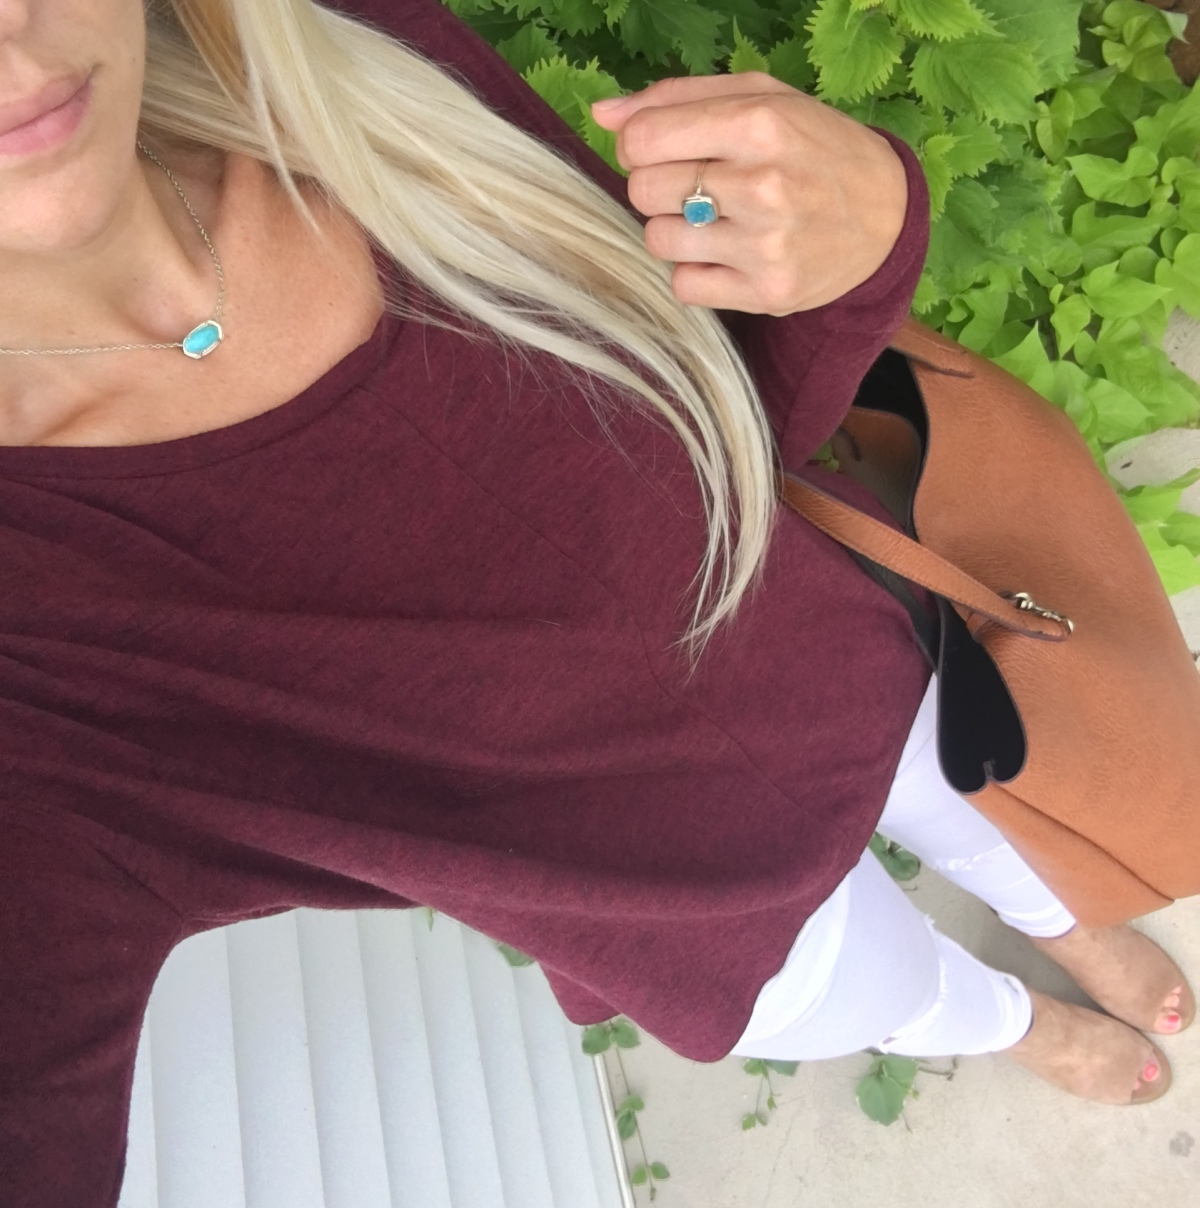 burgundy and white with a pop of teal |www.pearlsandsportsbras.com|